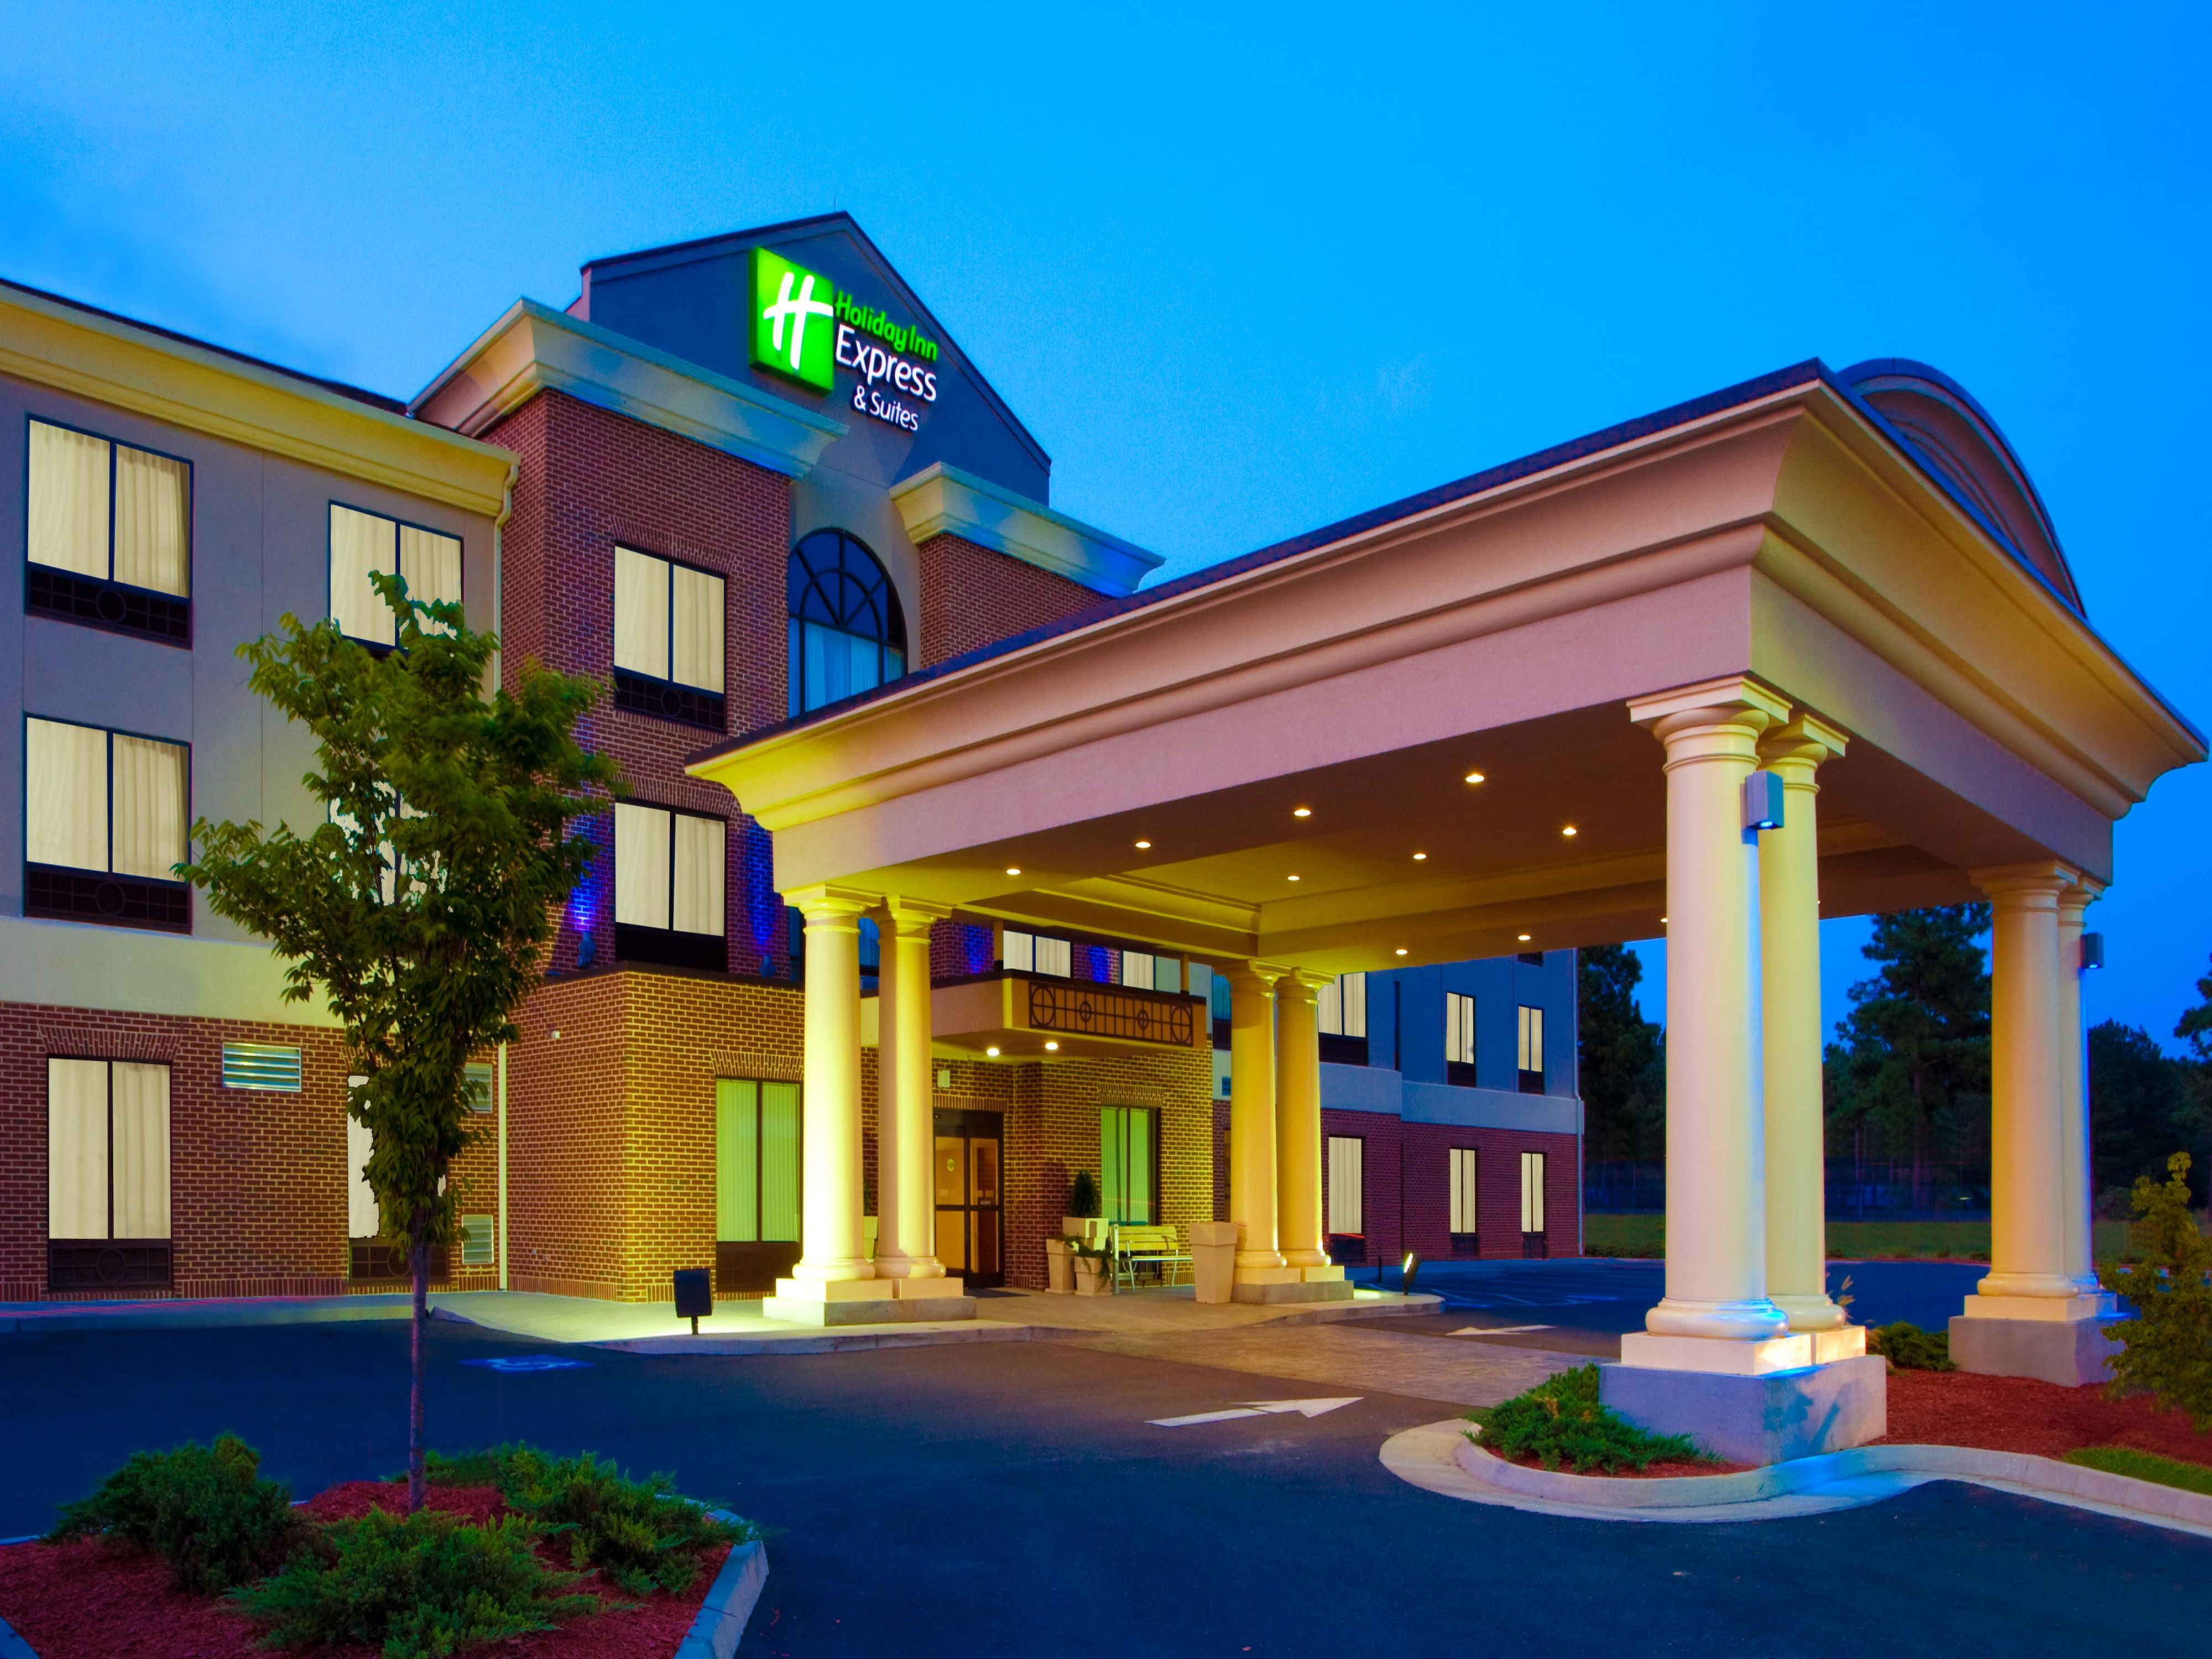 Holiday Inn Express & Suites Tappahannock